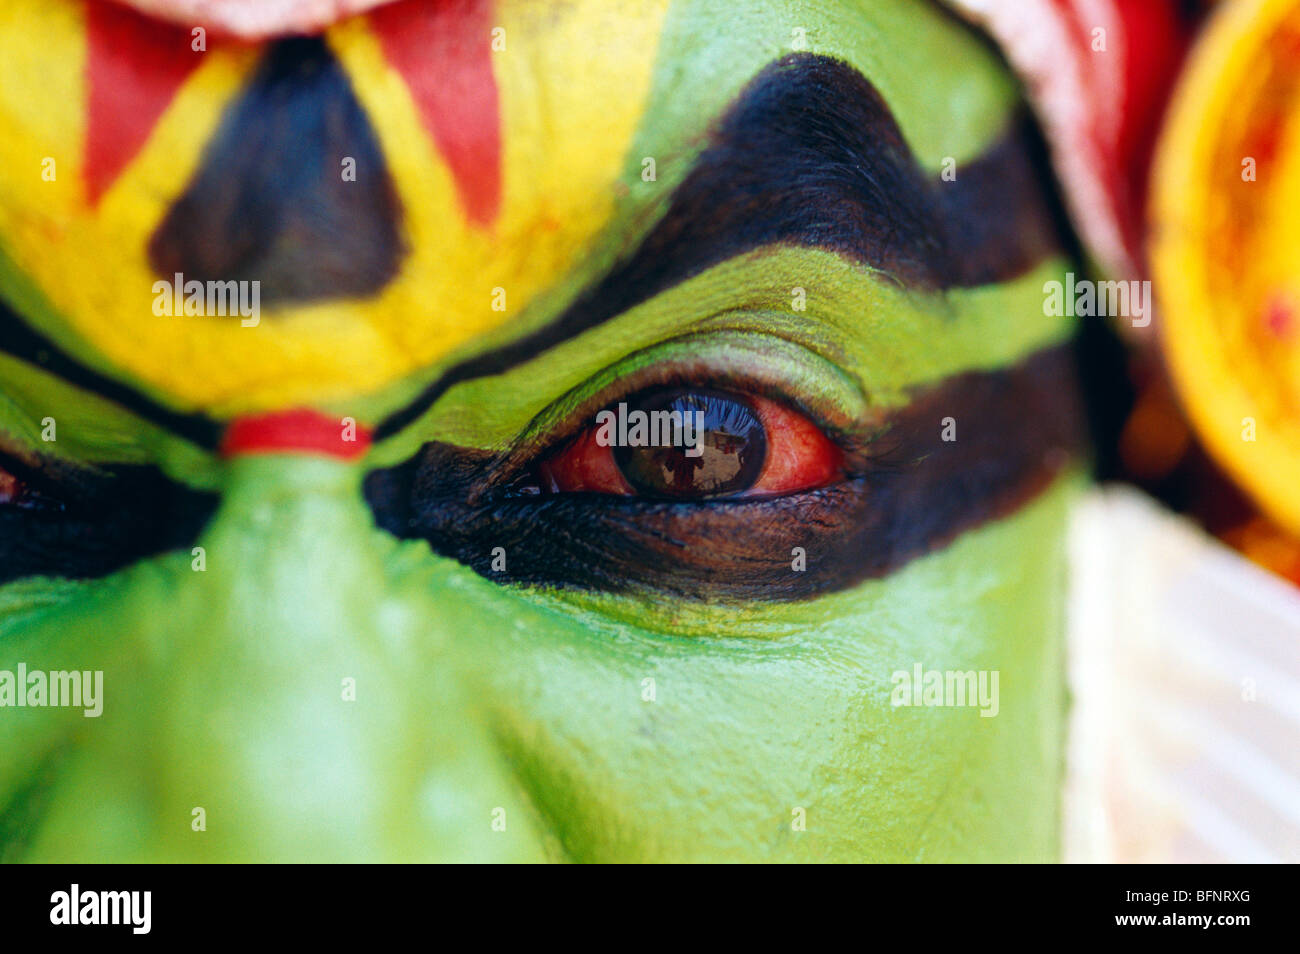 60564 RSC : danseuse de Kathakali Kerala ; Inde ; M.# 306 Photo Stock